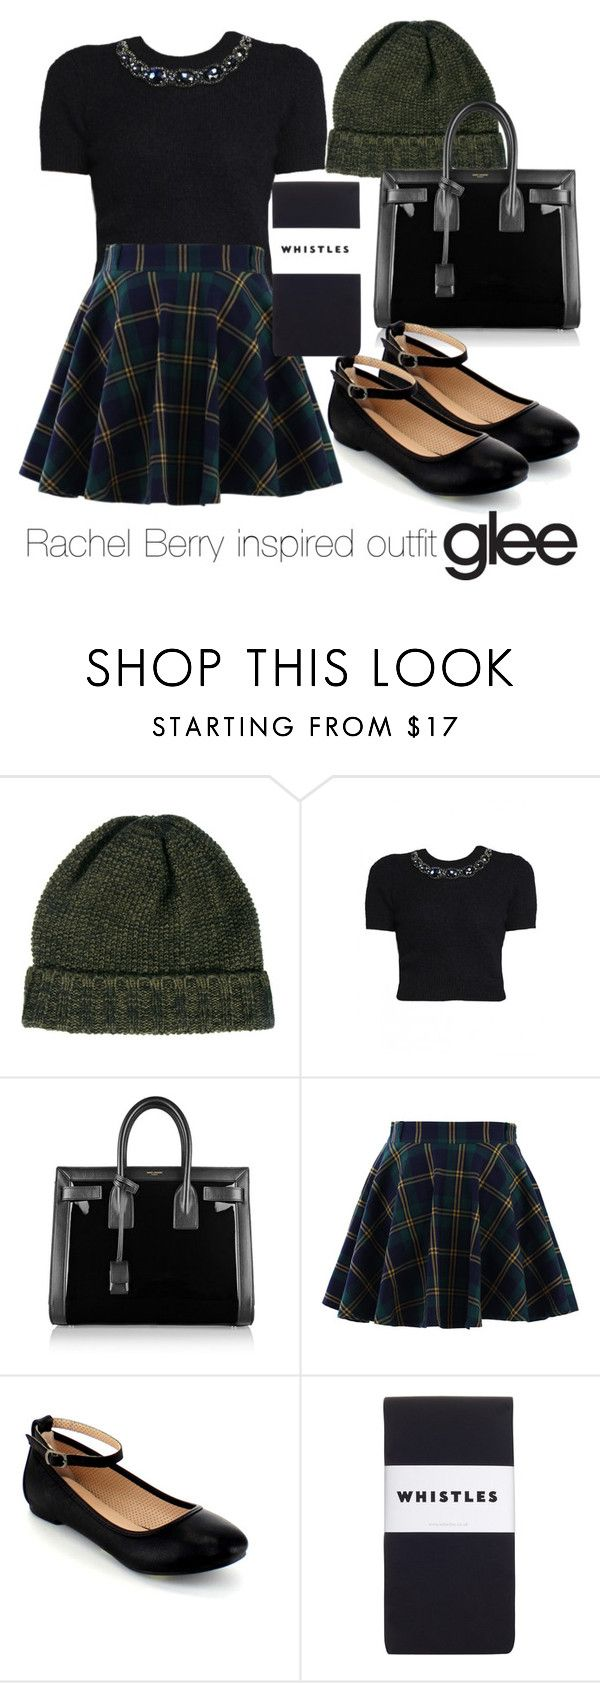 """Rachel Berry inspired outfit/Glee"" by tvdsarahmichele ❤ liked on Polyvore featuring SELECTED, Matthew Williamson, Yves Saint Laurent, Chicwish and Whistles"